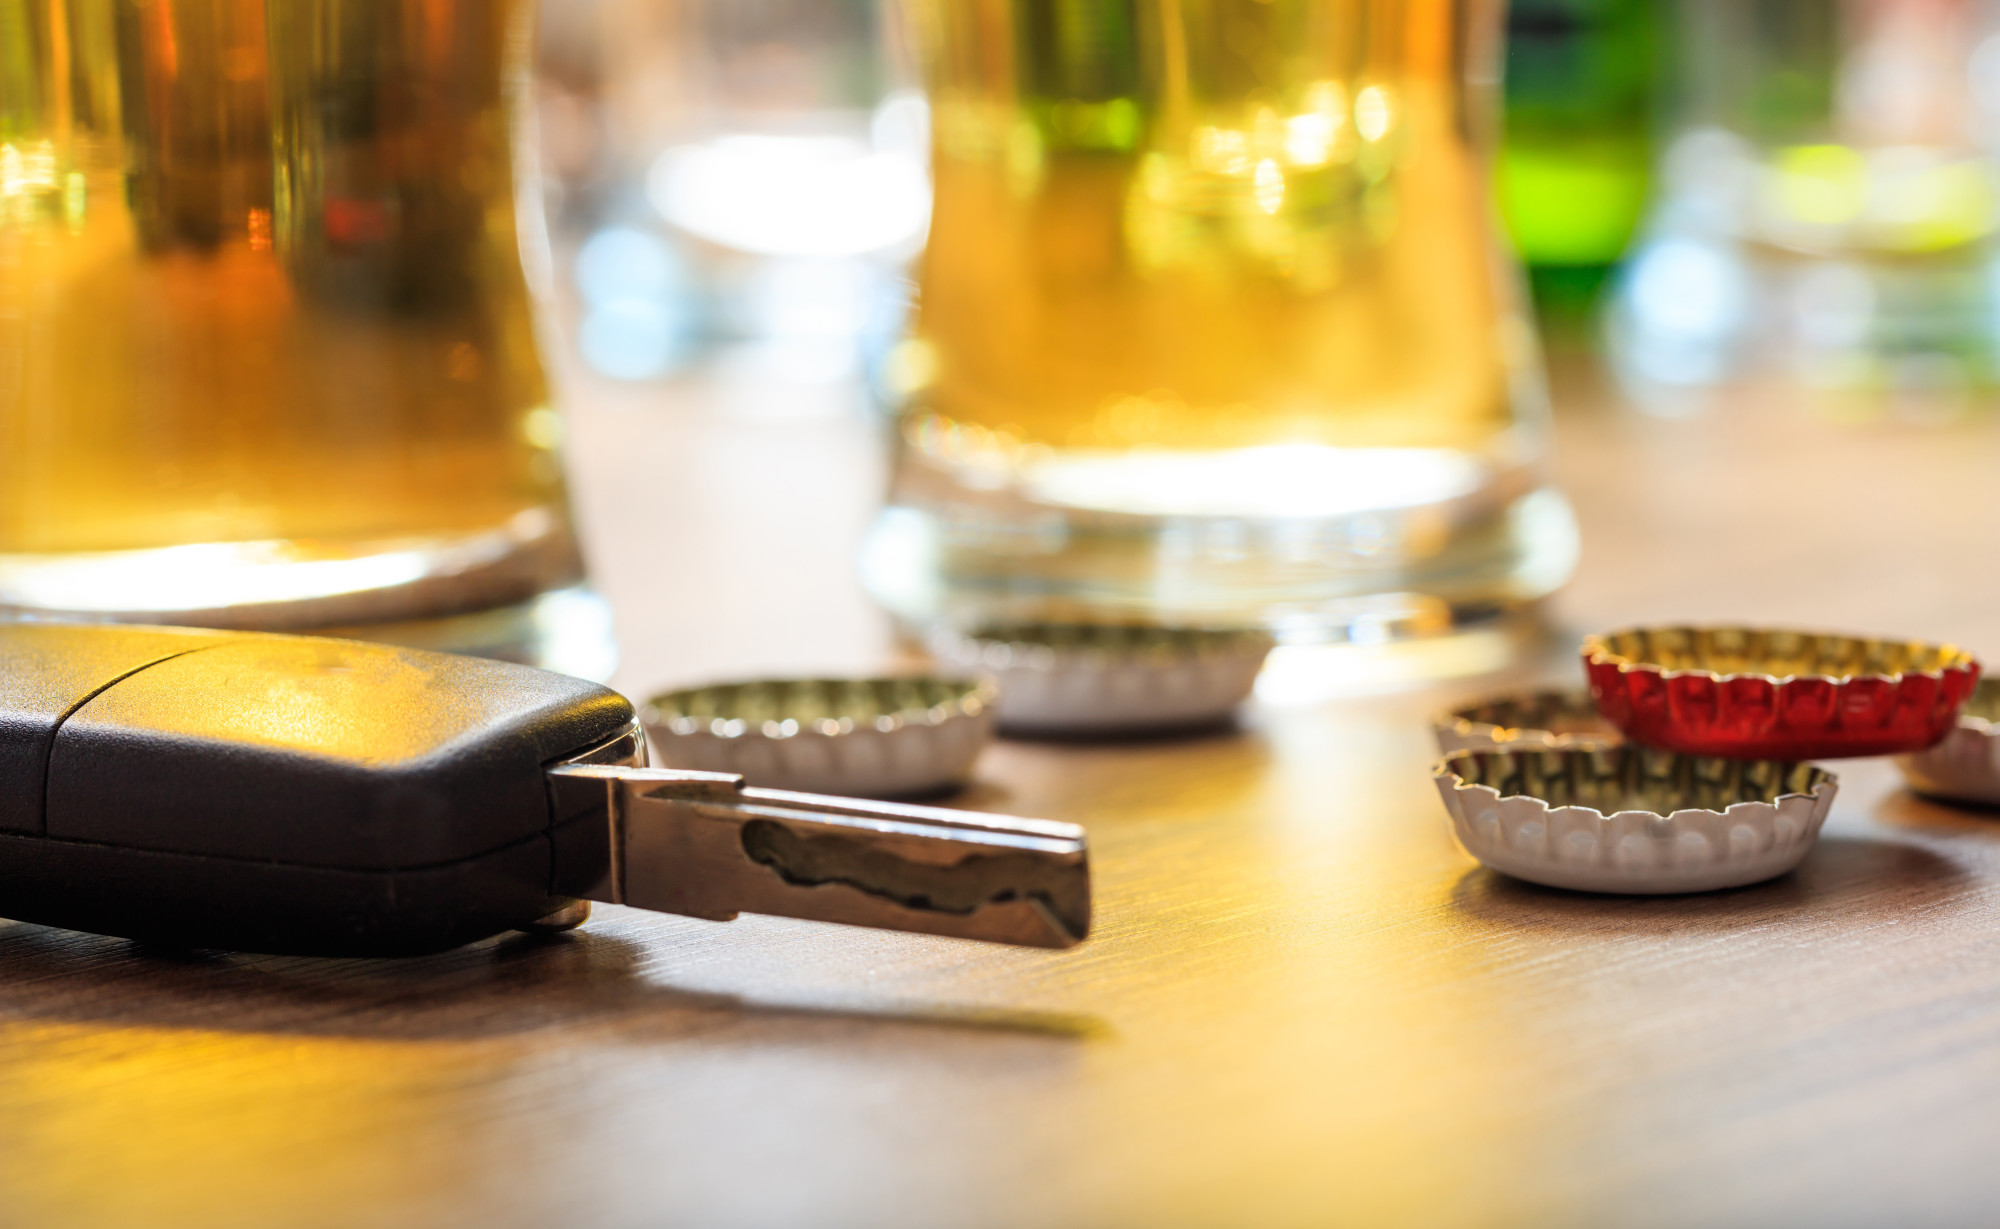 3rd DWI Offense? Here is What a DWI Lawyer Recommends